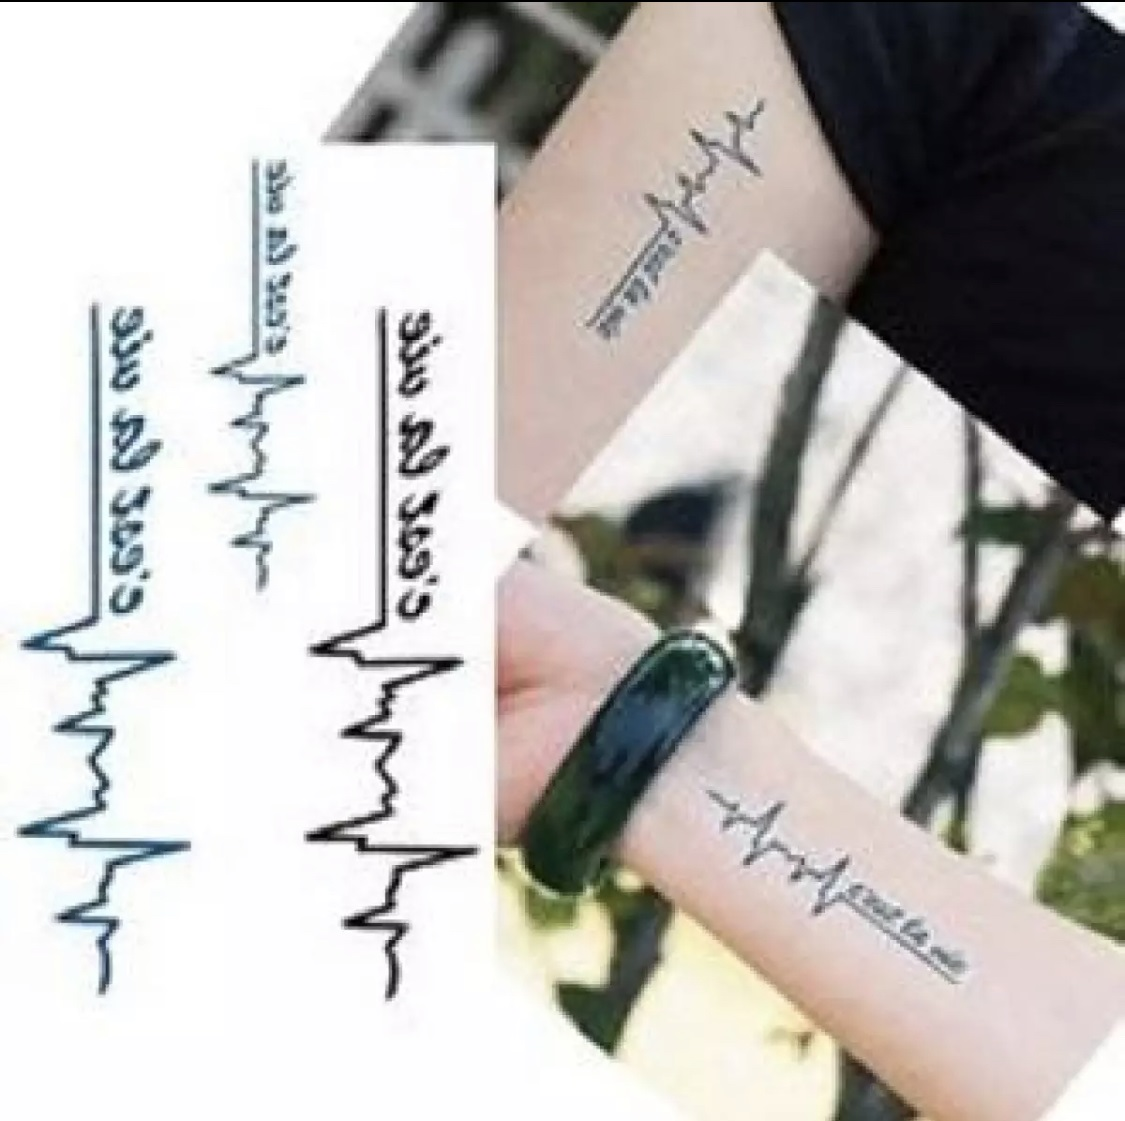 Fla-sh Waterproof Temporary Tattoo Water Proof